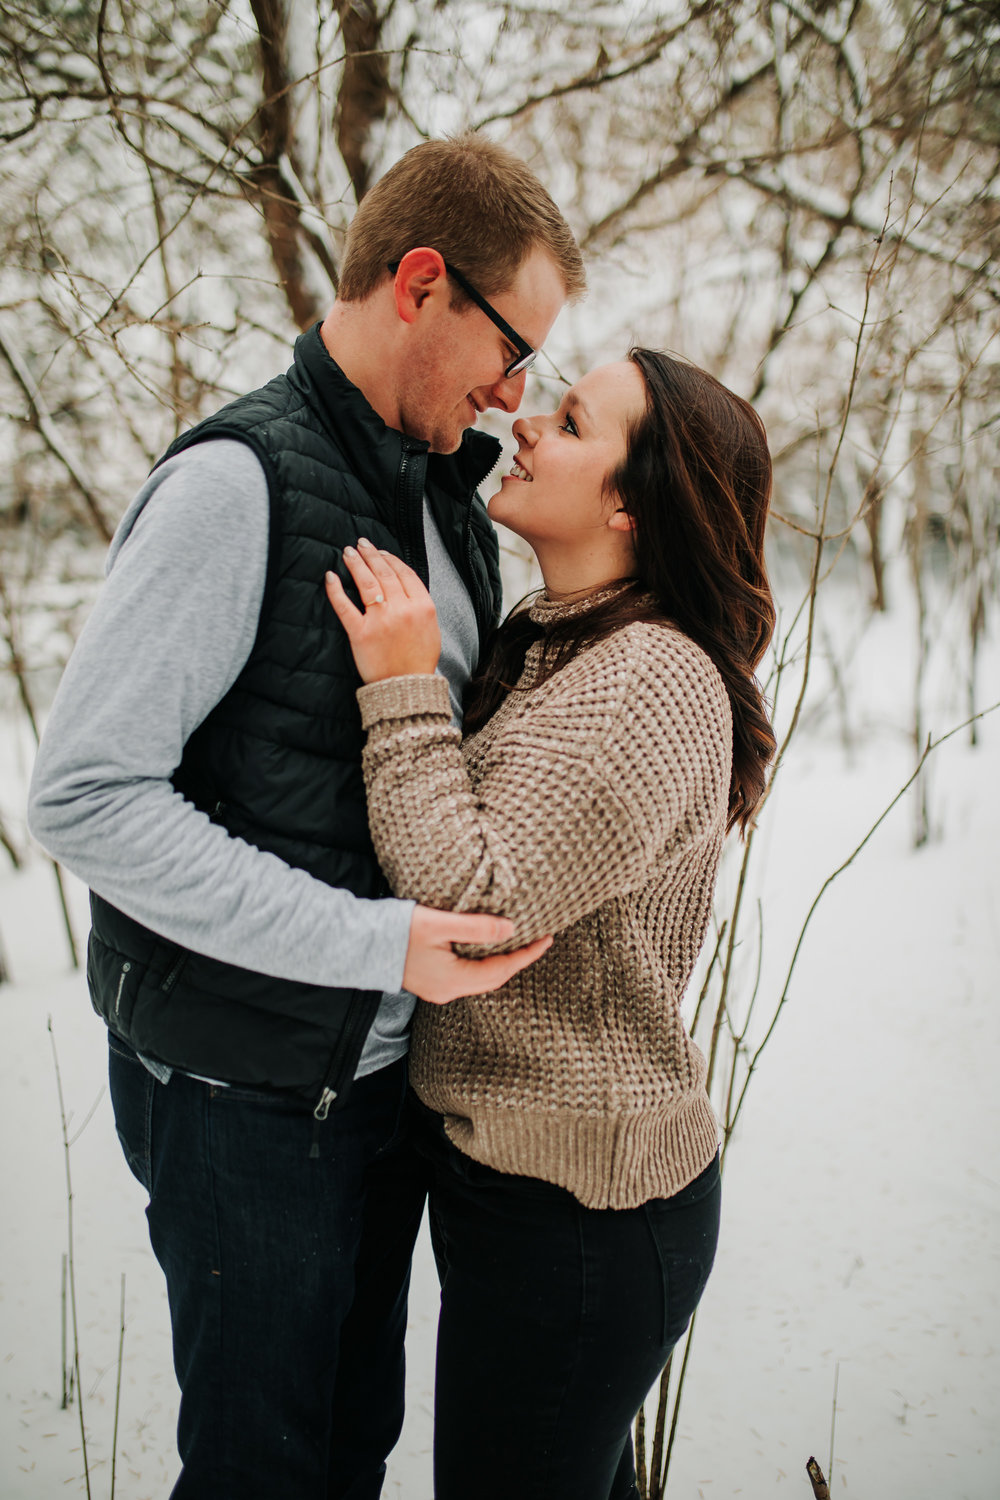 Vanessa & Dan - Engaged - Nathaniel Jensen Photography - Omaha Nebraska Wedding Photographer - Standing Bear Lake - Snowy Engagement Session-48.jpg